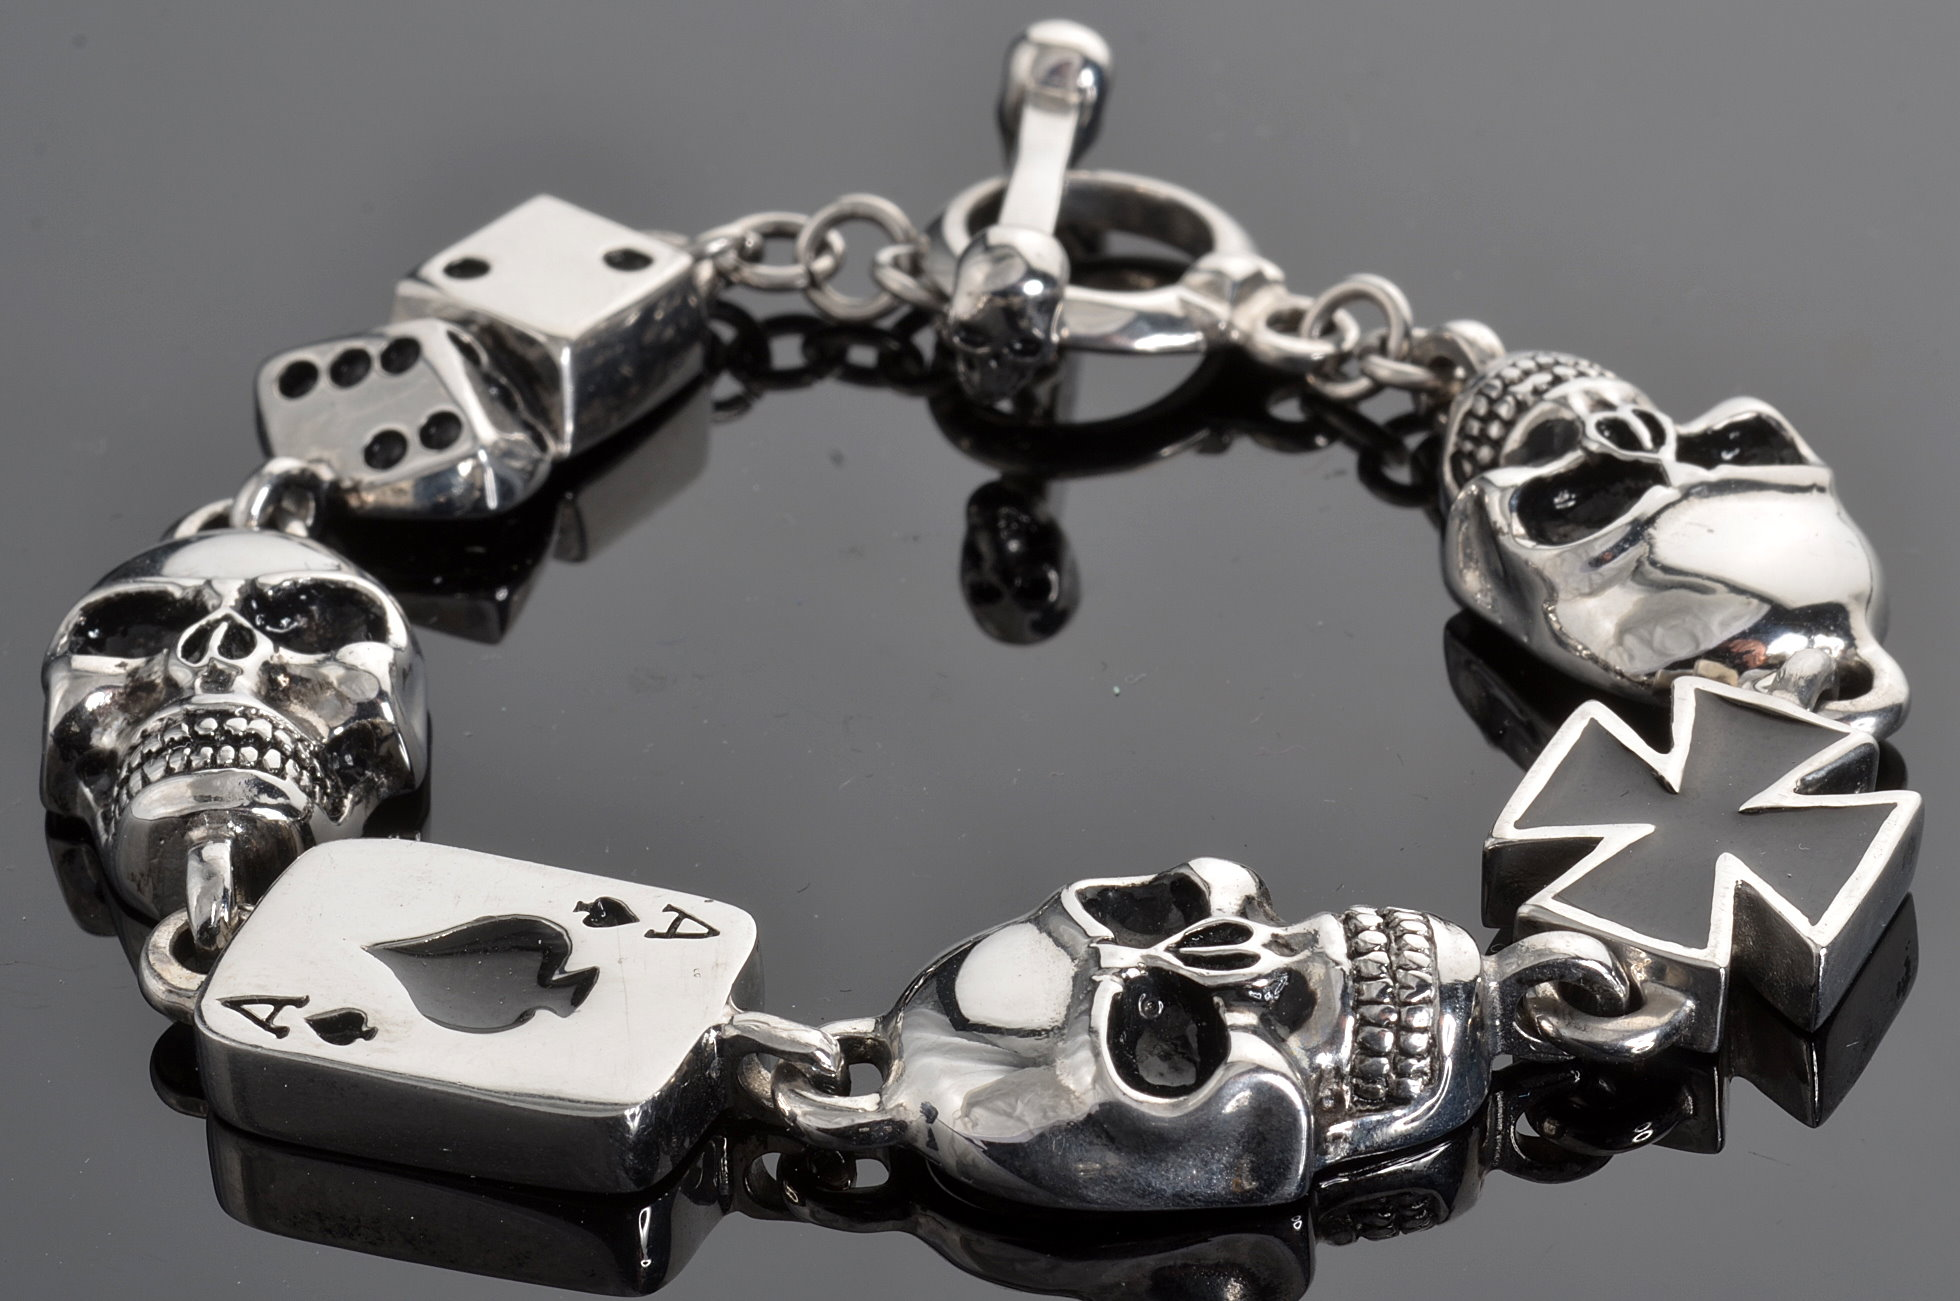 Gents Stainless Steel Silver Black 9 Bike Chain Bracelet It Now And Ships Today Priority Mail